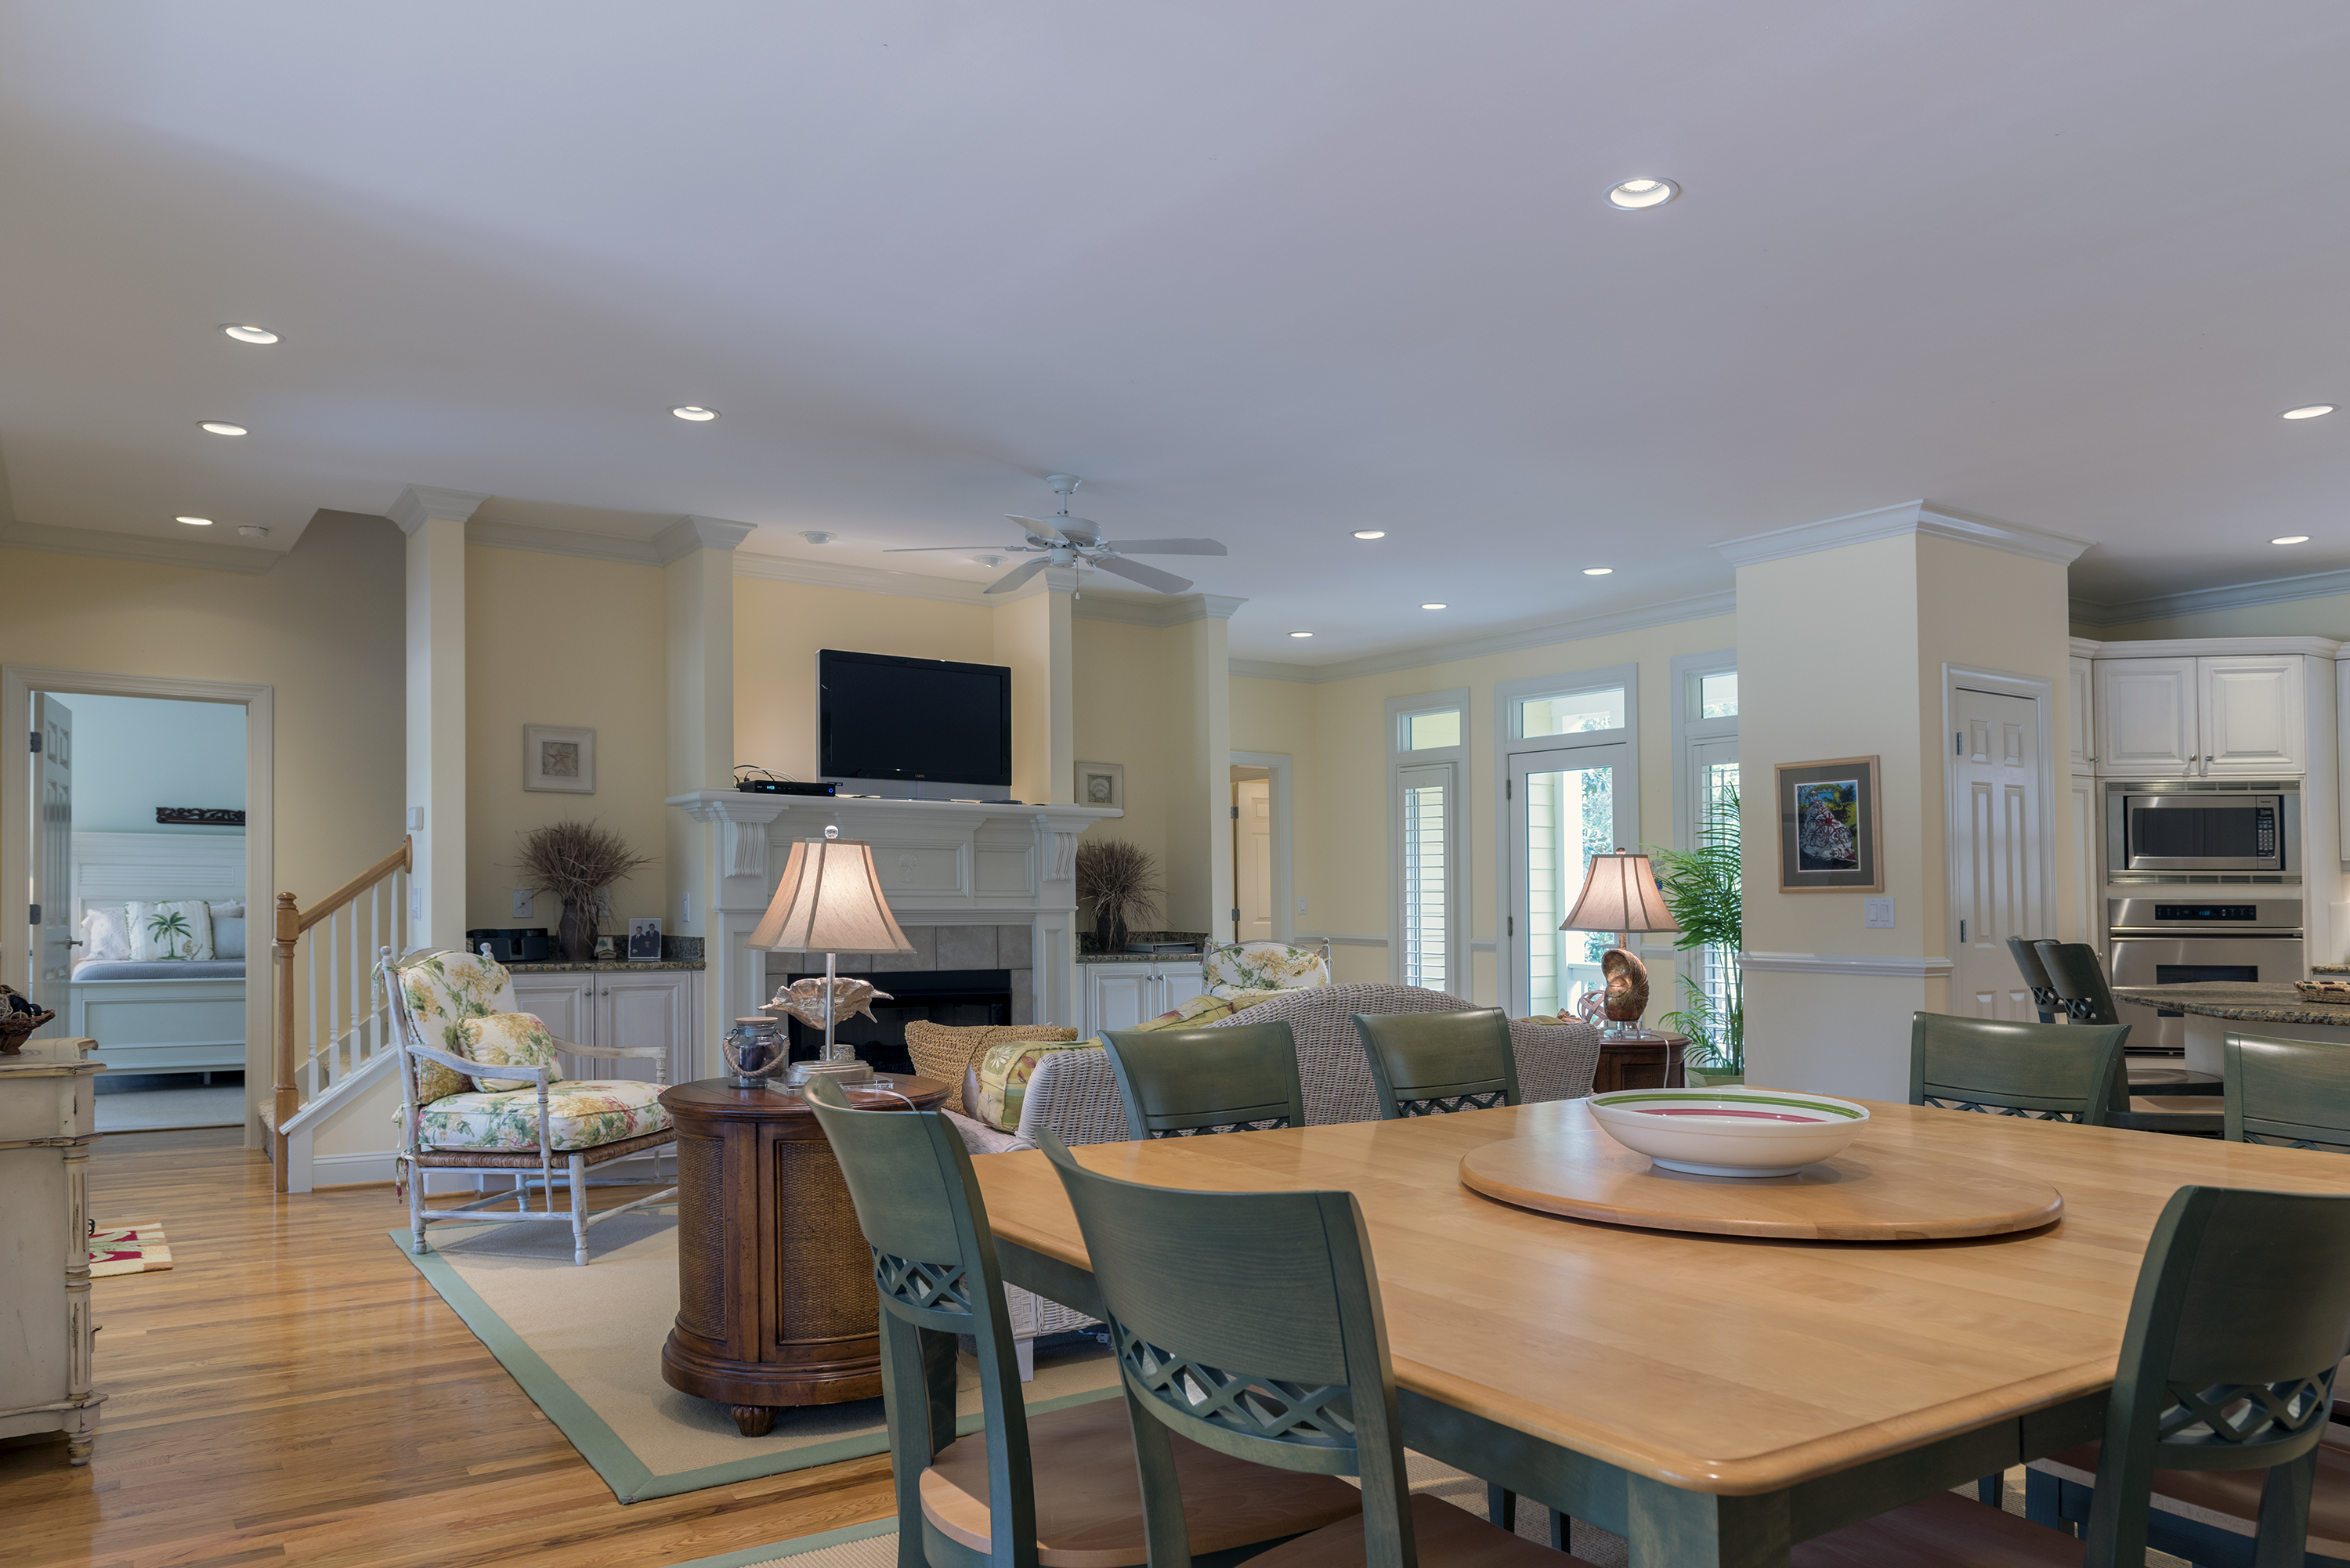 Open floor plan with kitchen, living room, dining room and sunroom!  High ceilings, high-end furnishings!